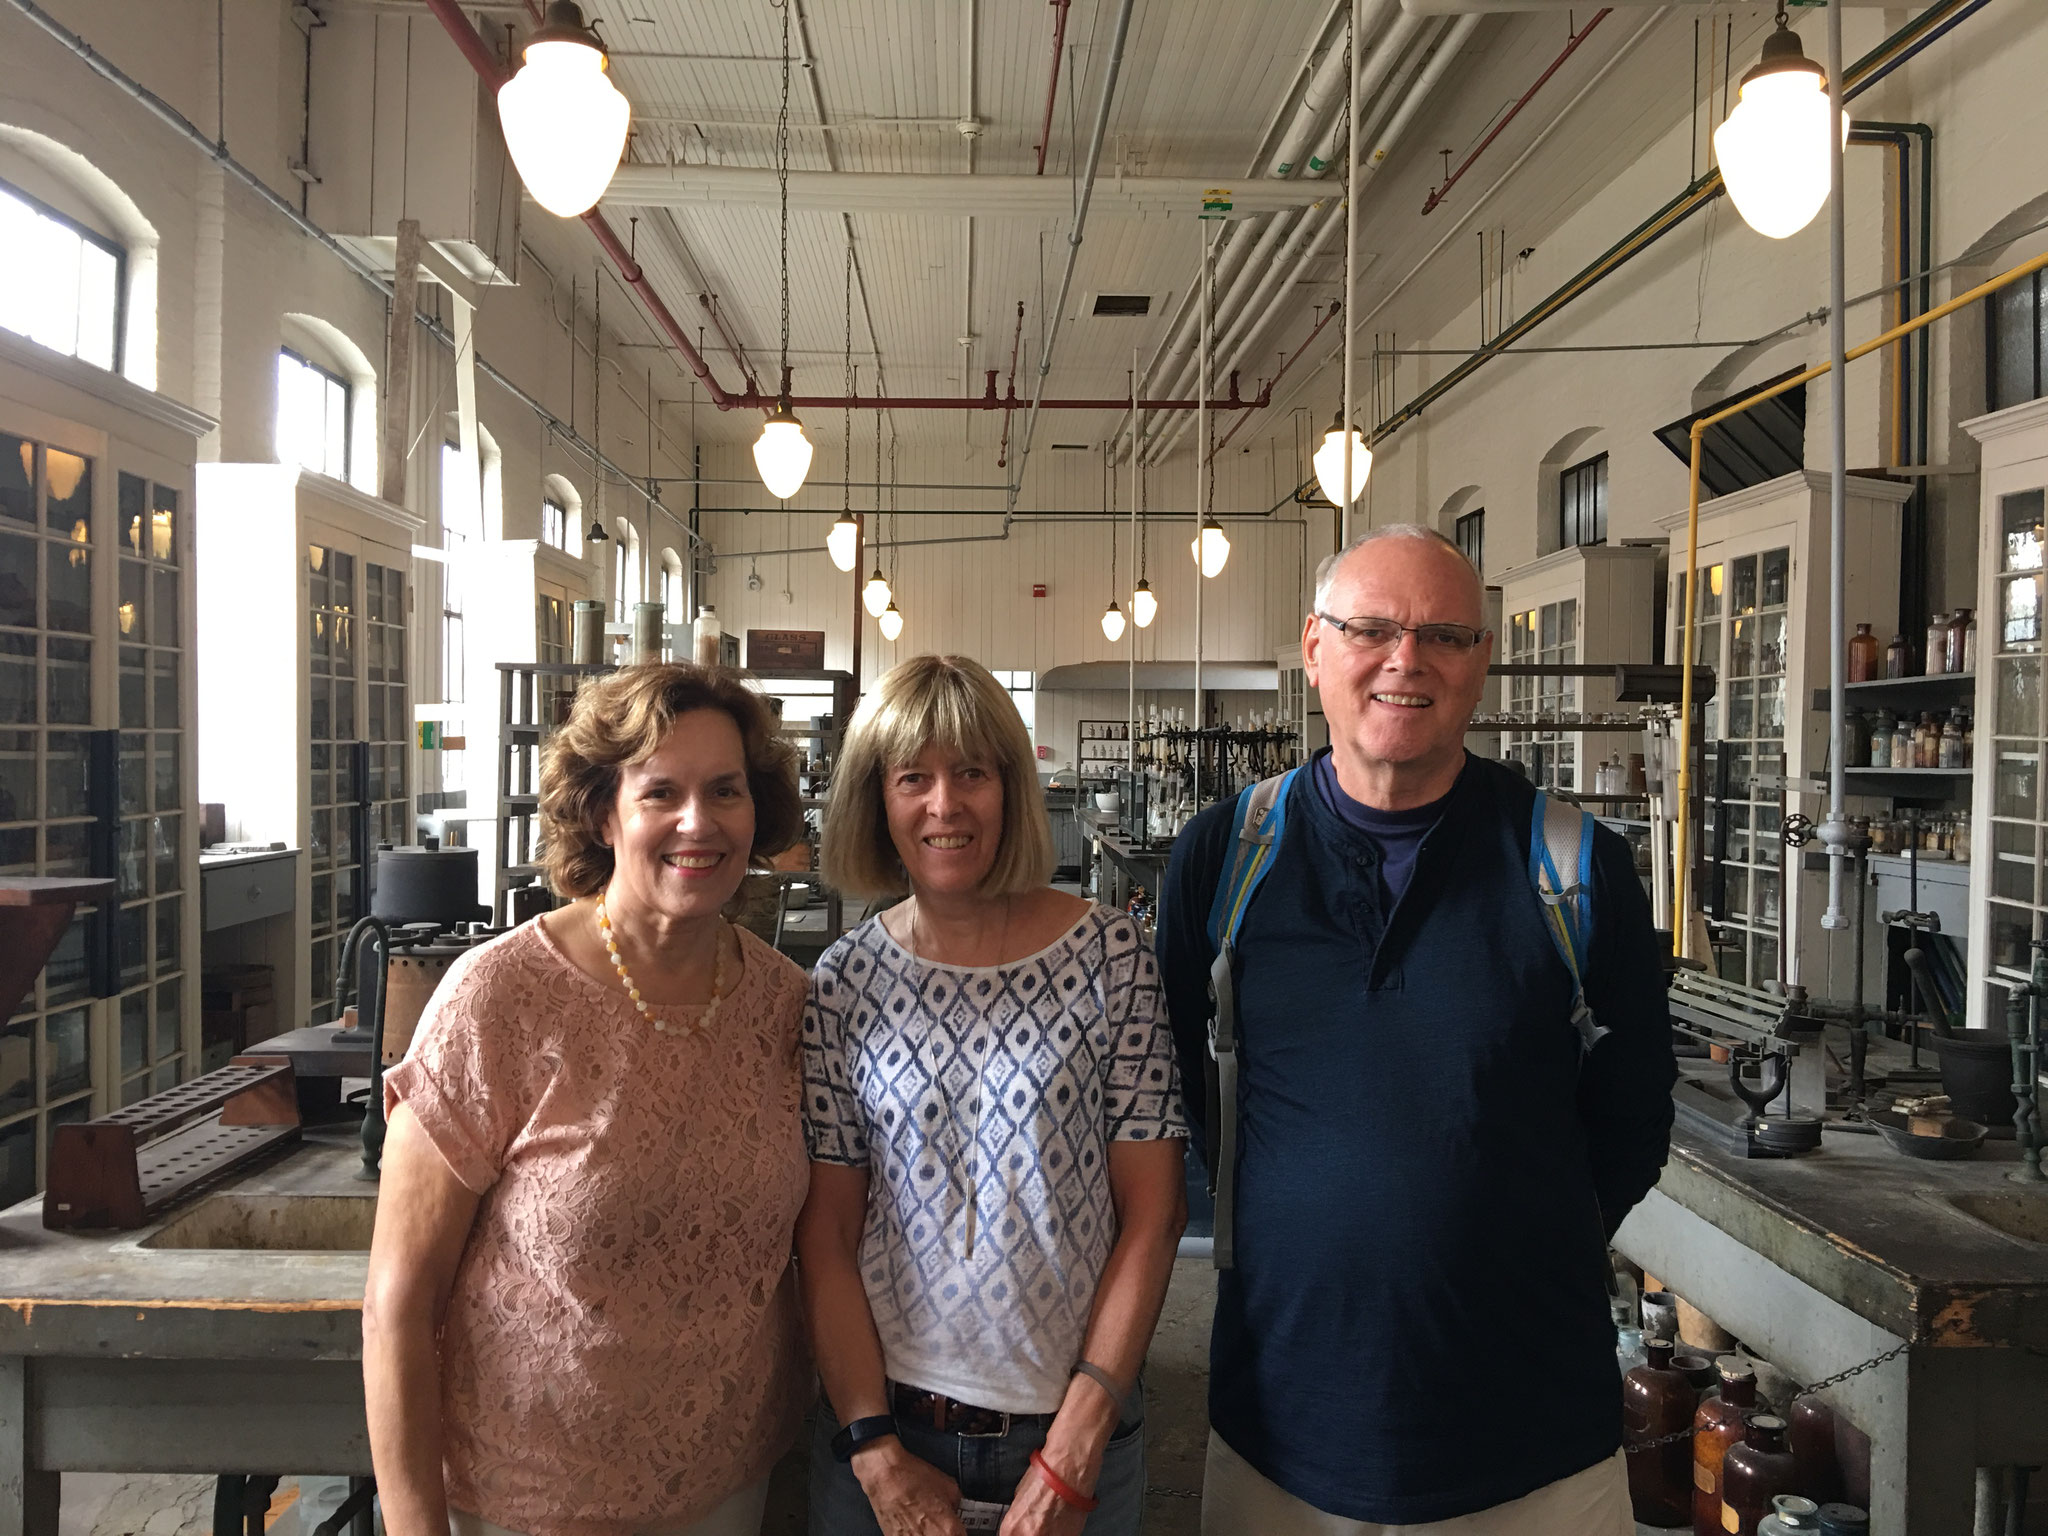 Lorraine, Nancy Hynes, & Bernd Groner in Edison's chemsitry lab, 7-29-2017